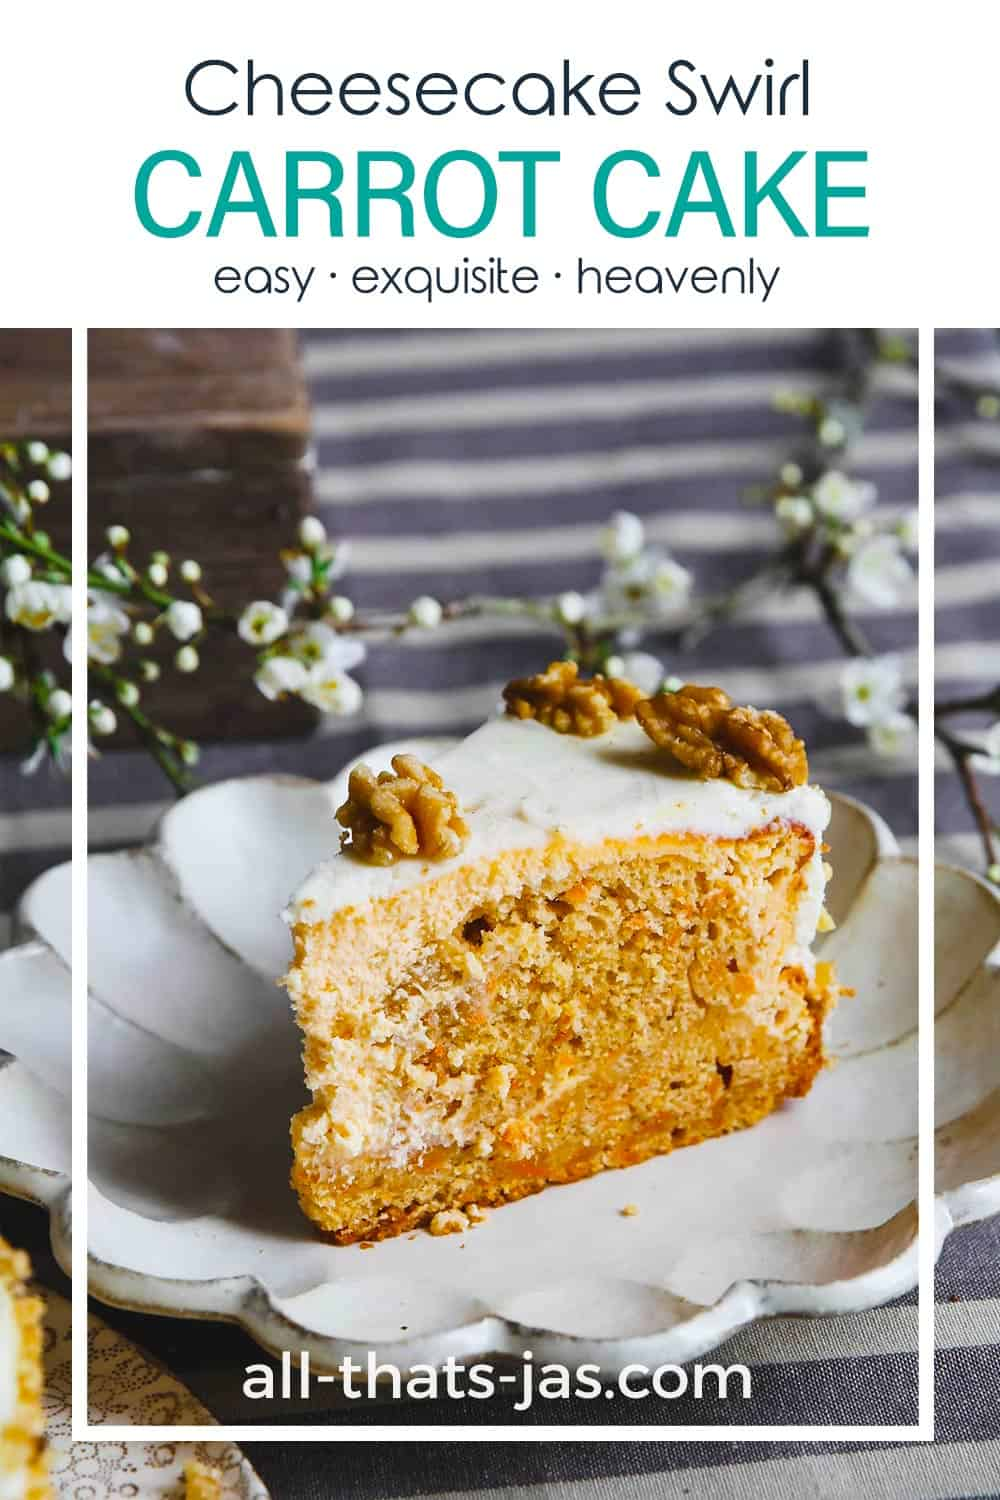 A close up slice of the carrot cake with cheesecake swirl and with text overlay.